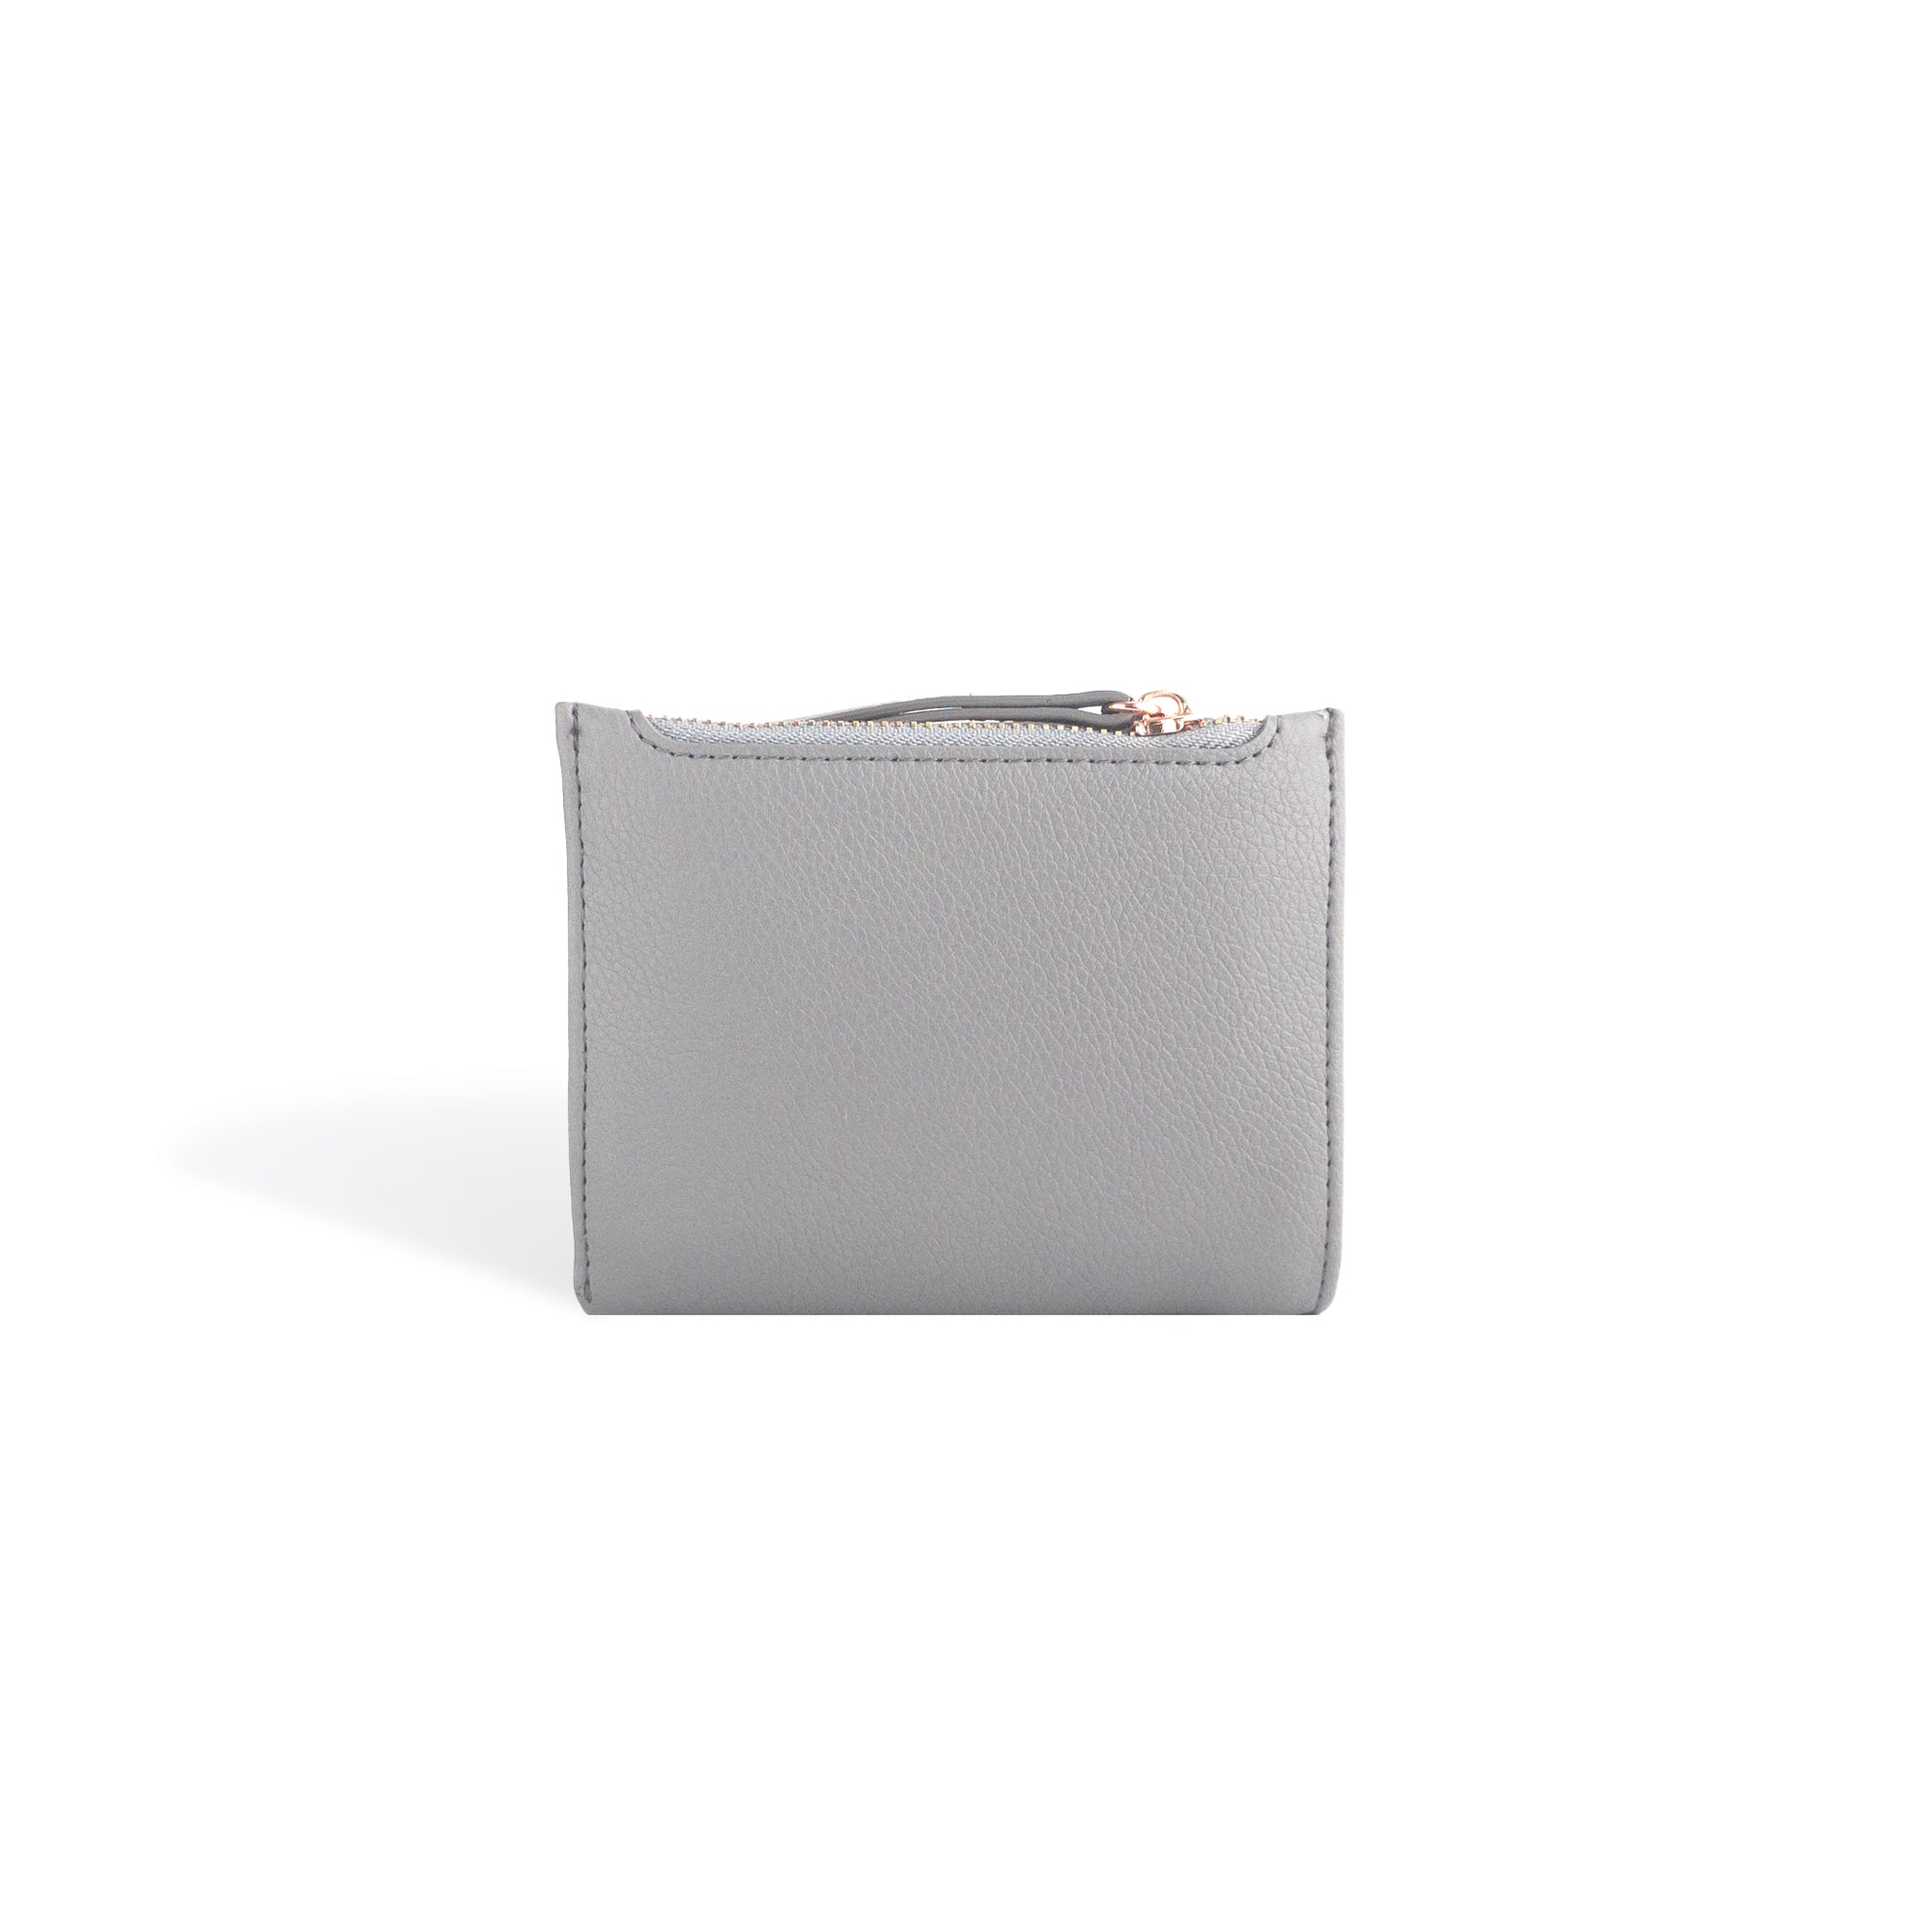 Mini Wallets for Women Gray Leather